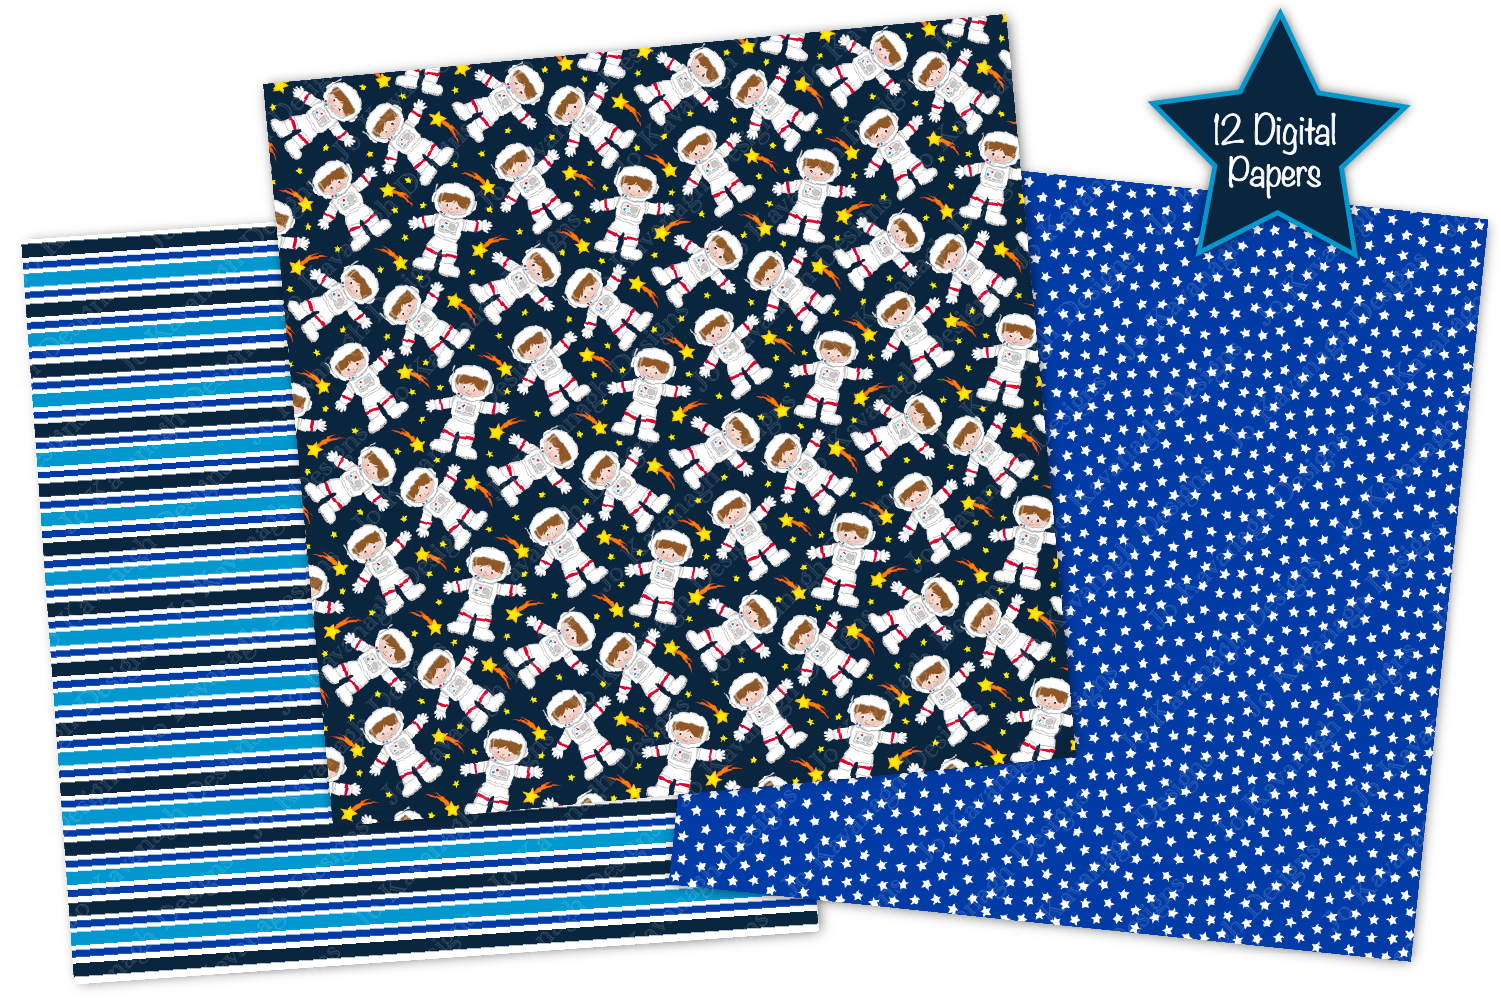 Space Digital Papers, Space Patterns, Astronauts, Planets example image 2